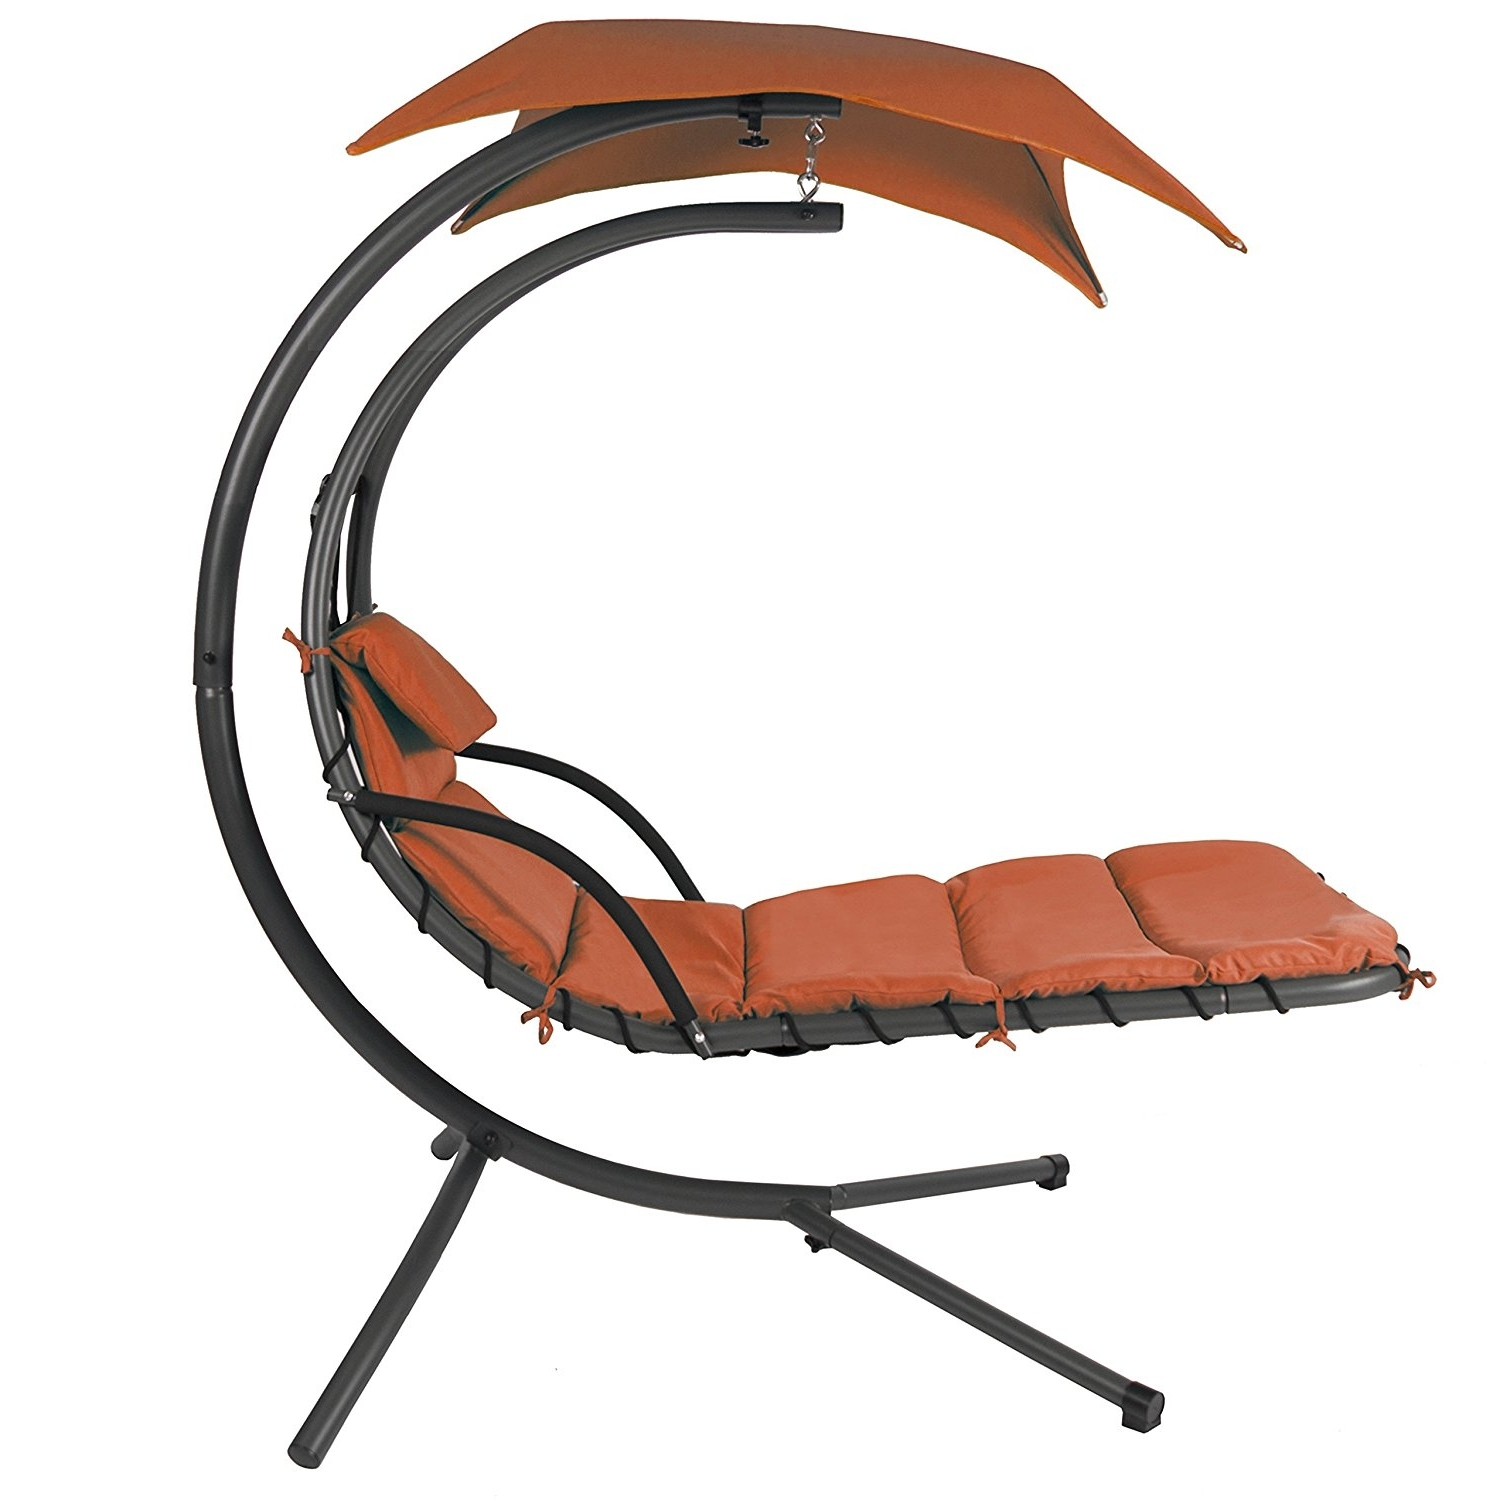 Amazon : Best Choice Products Orange Color Handing Chair Intended For Most Recent Chaise Lounge Swing Chairs (View 8 of 15)